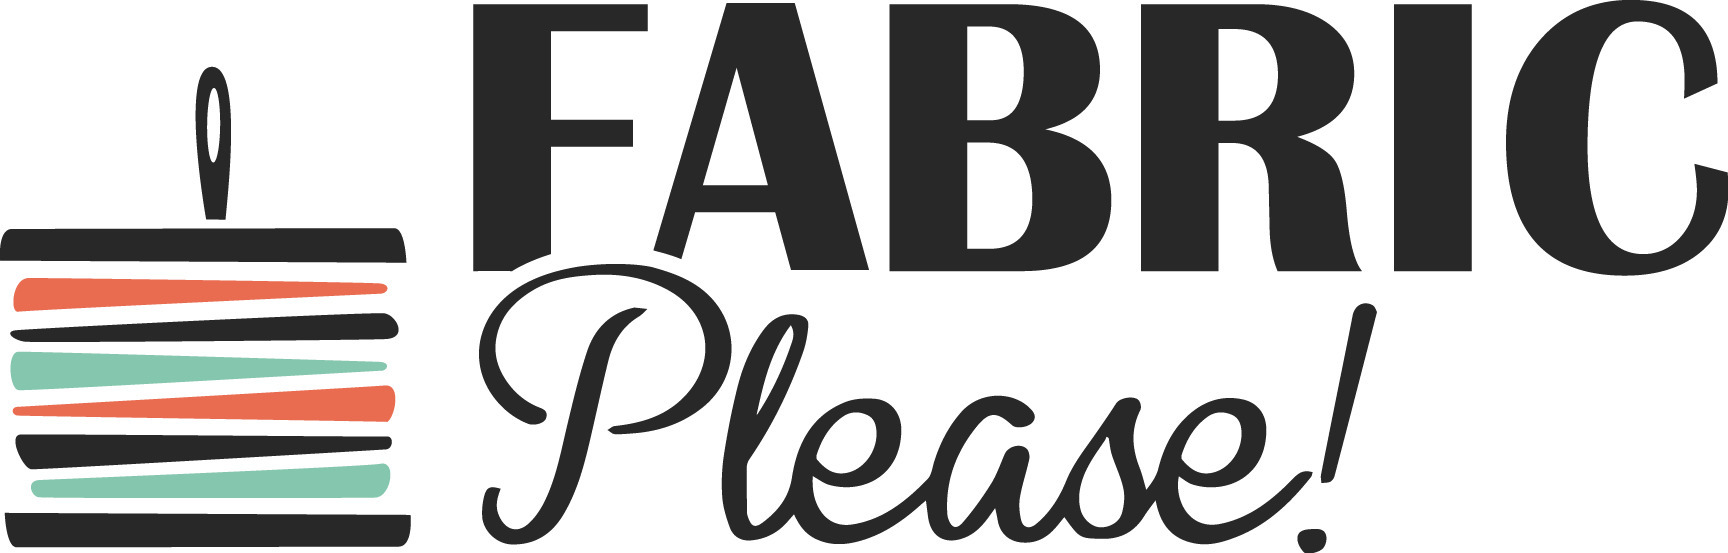 Fabric Please! (@fabricplease) Cover Image